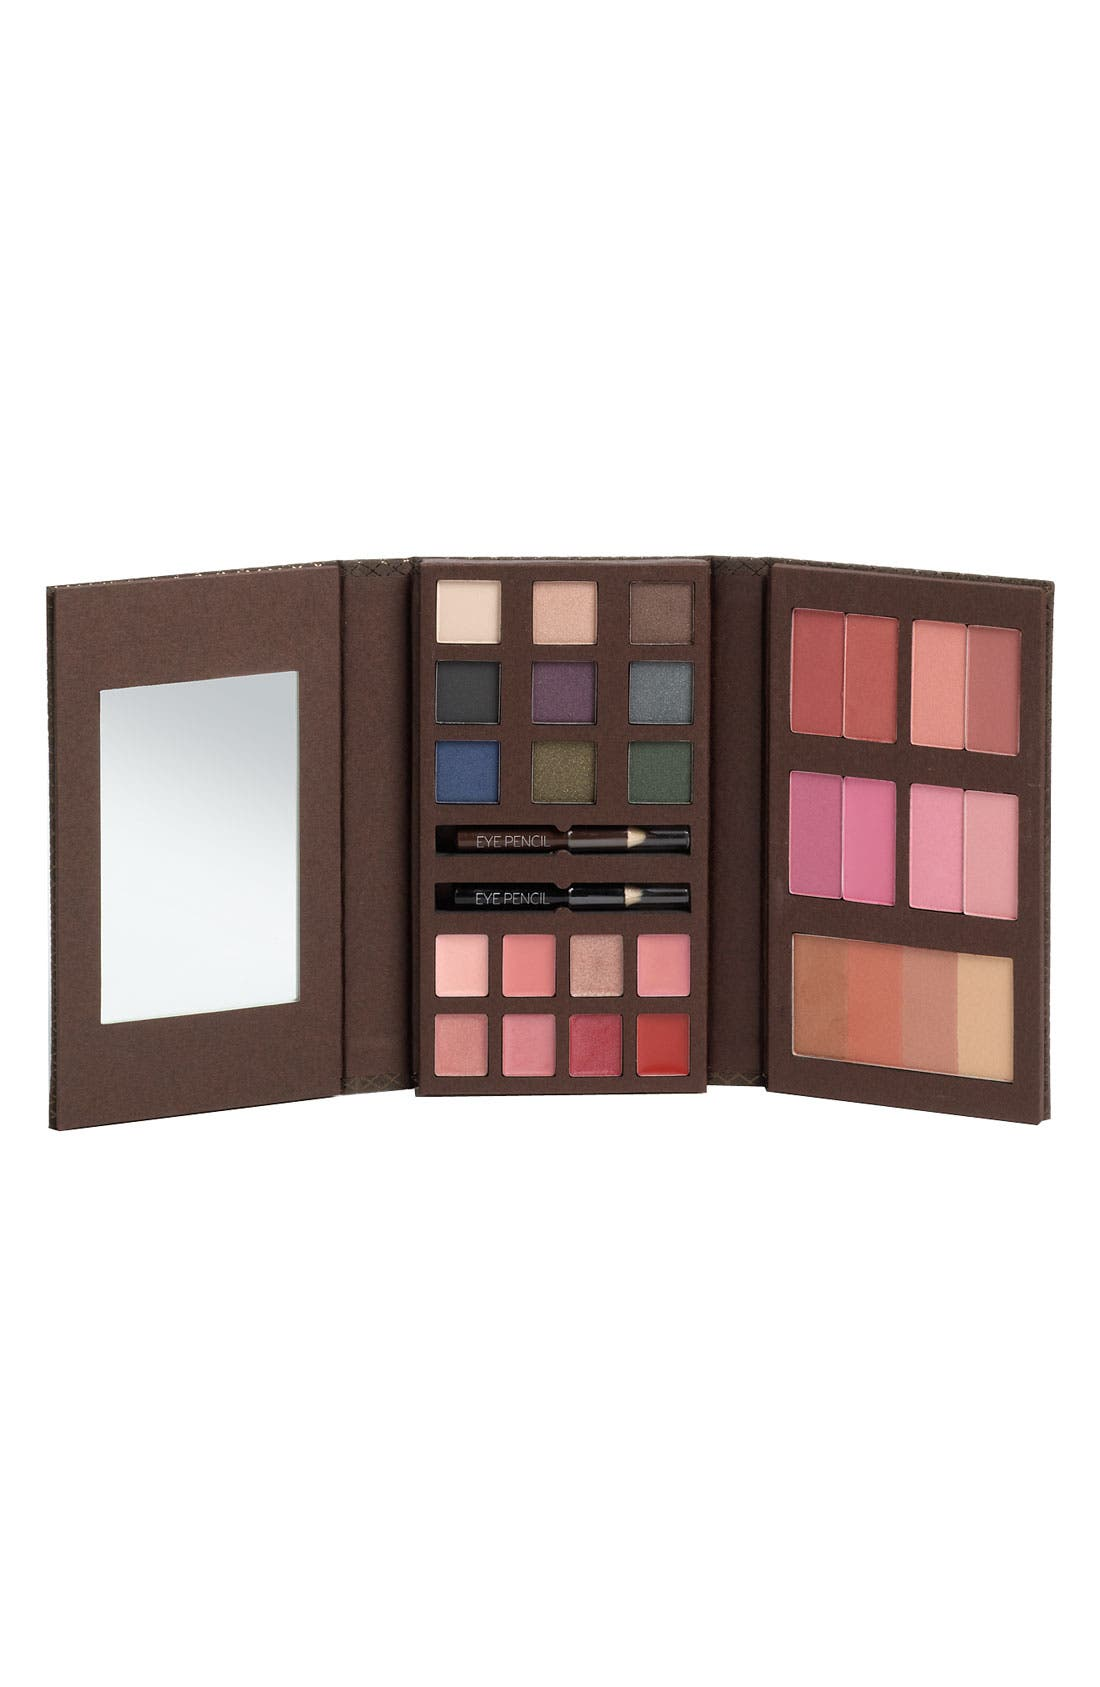 Alternate Image 1 Selected - Nordstrom 'Fall Essentials' Beauty Palette